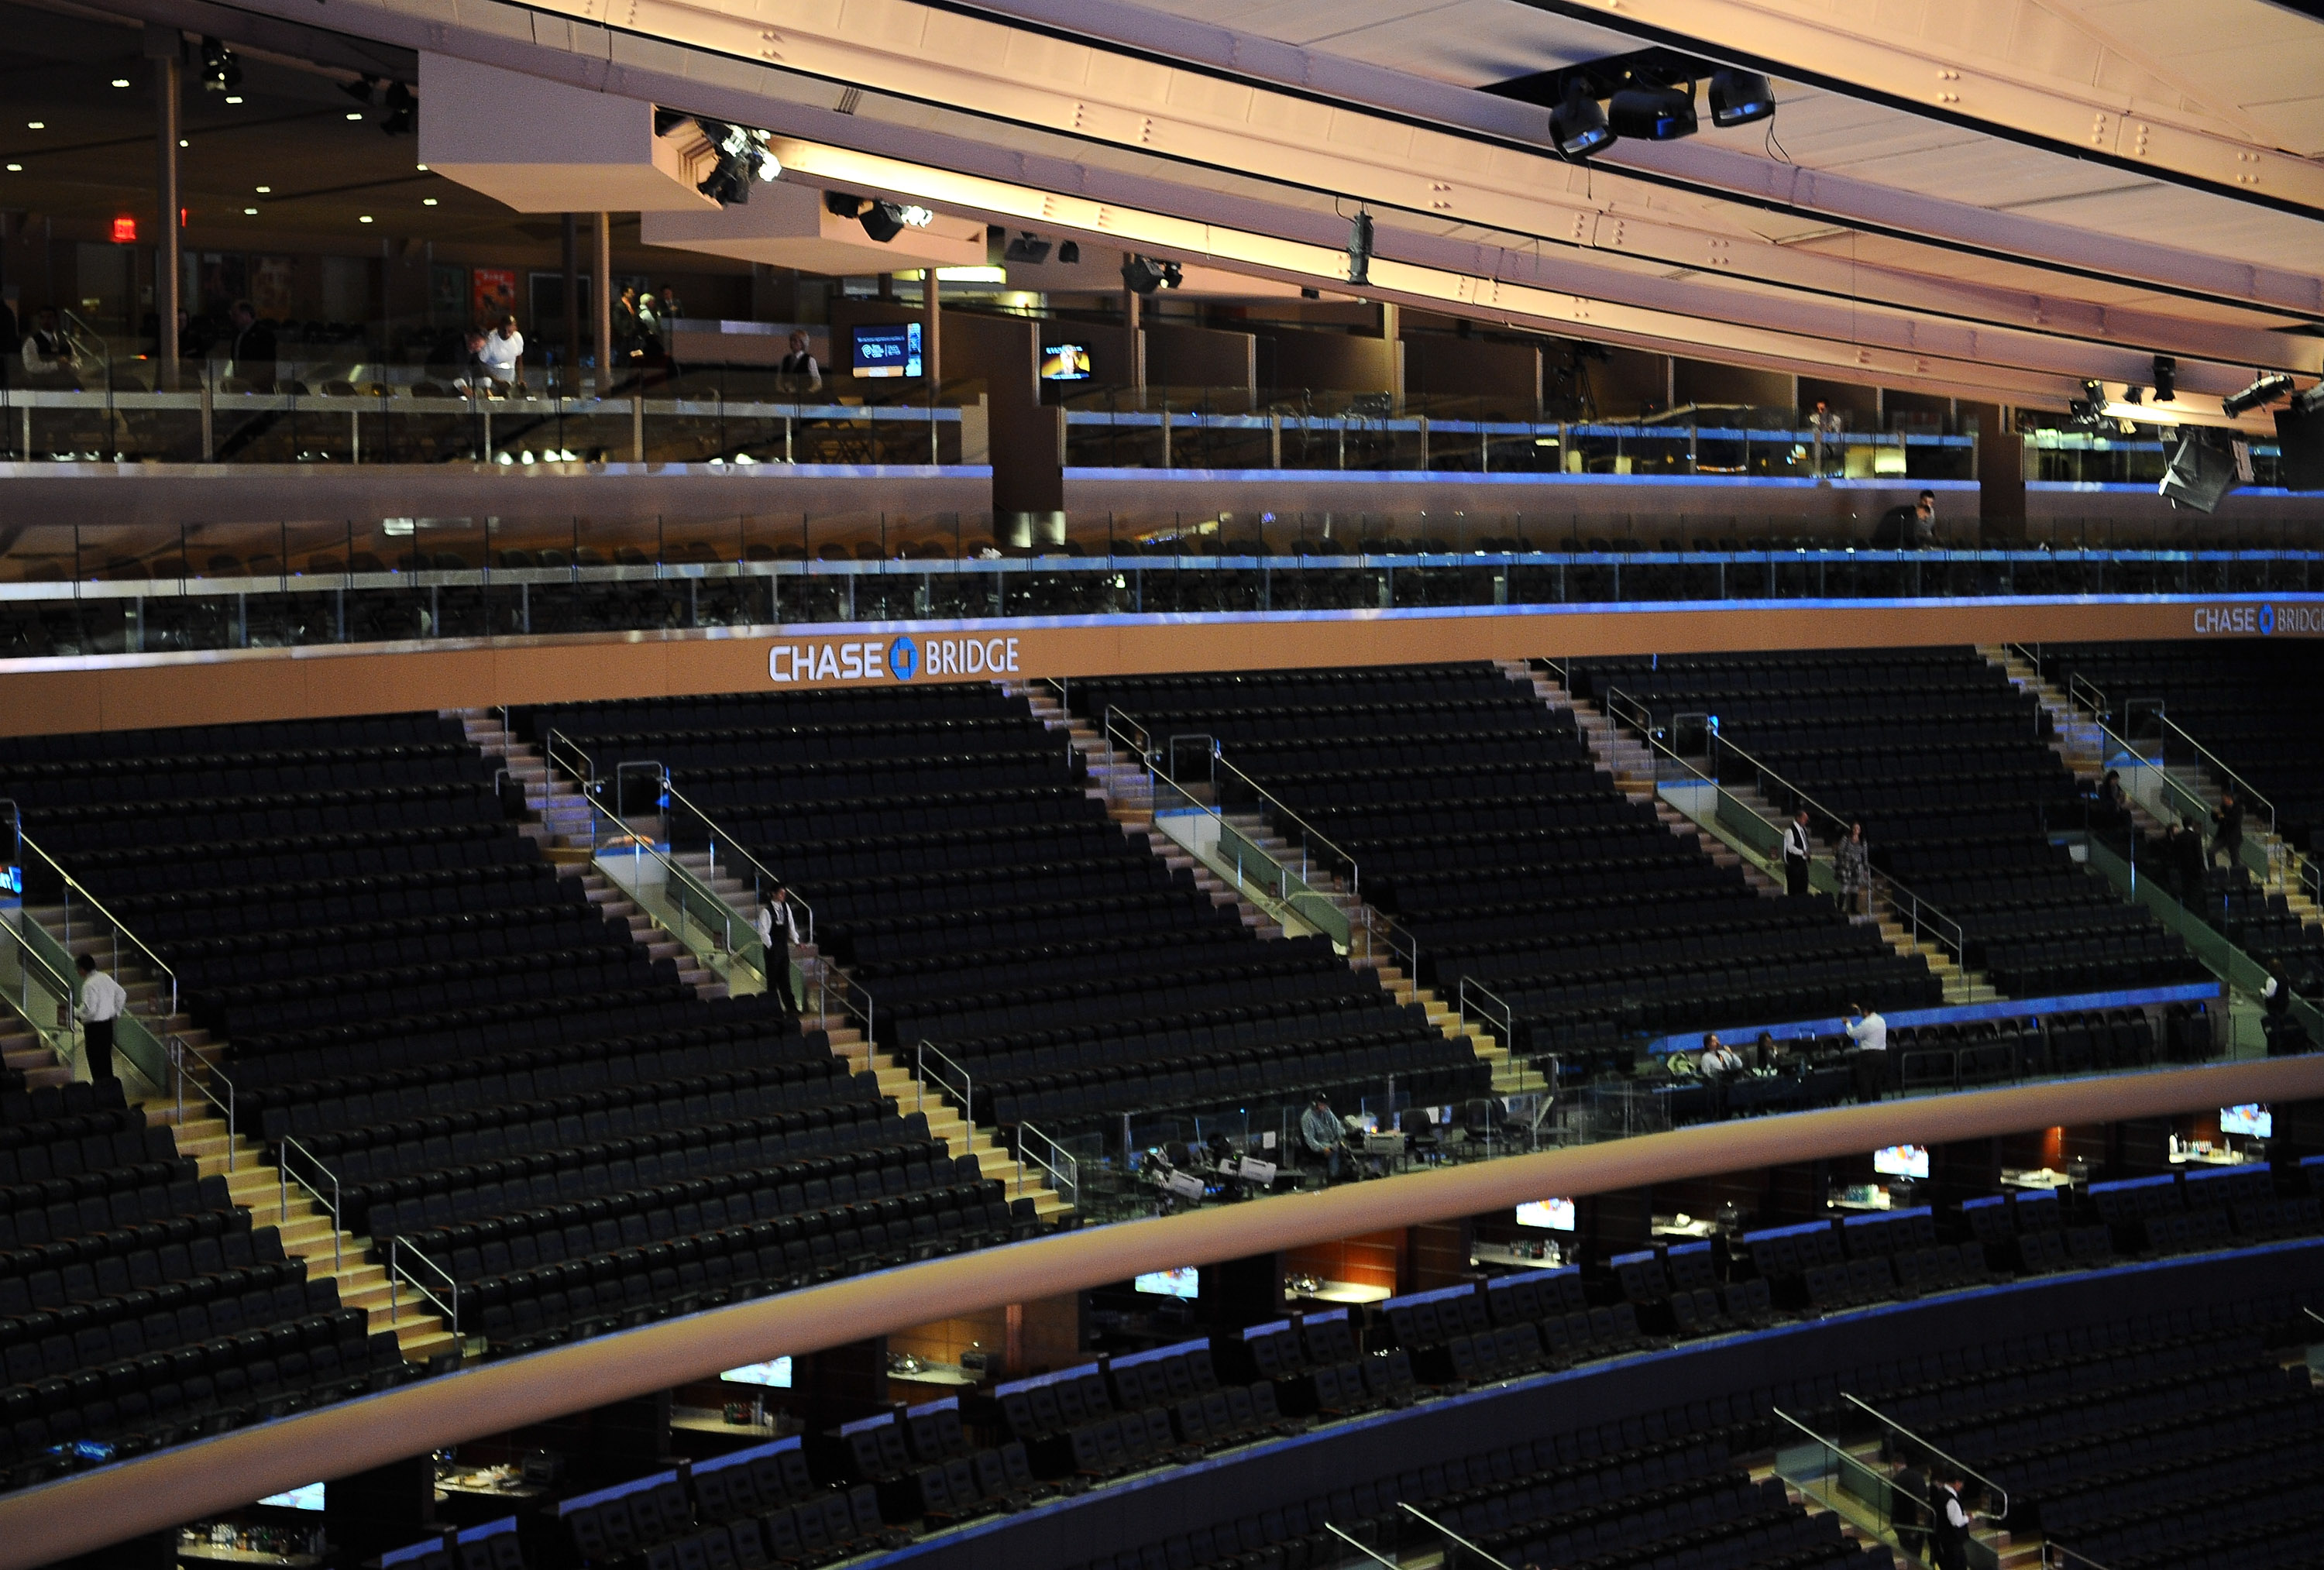 Where is madison square garden